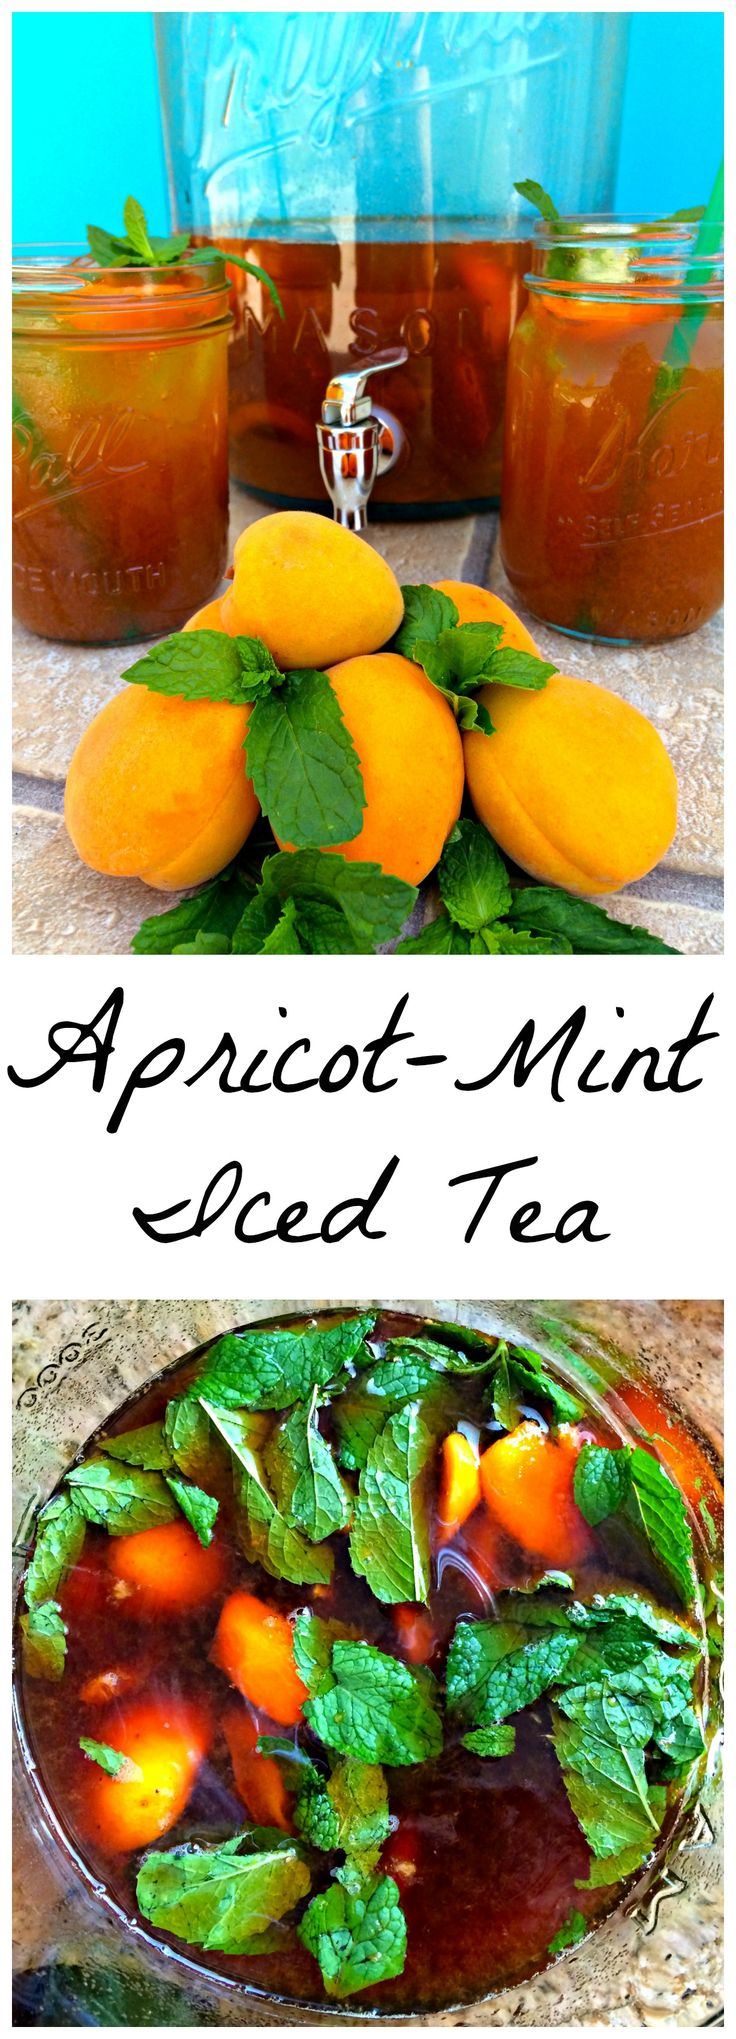 Apricot-Mint Iced Tea ~ Tea stepped with fresh apricot and mint and iced to be utterly refreshing. ~ The Complete Savorist